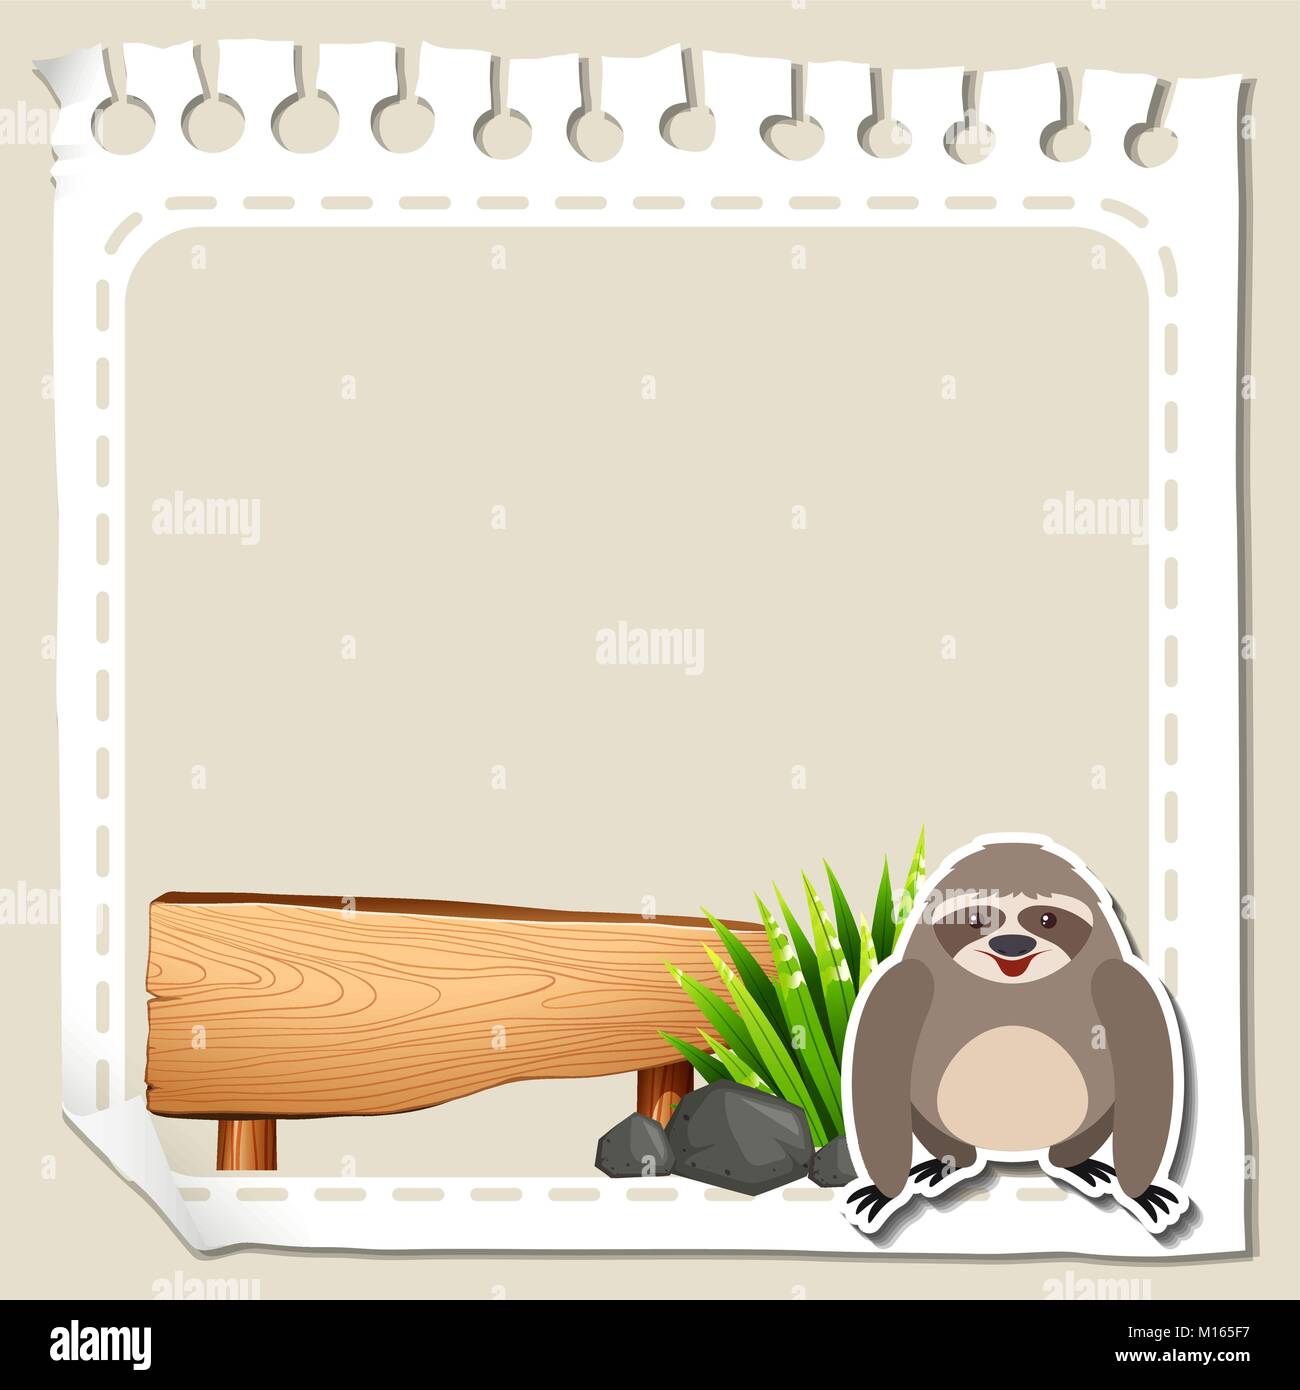 paper template with cute sloth illustration stock vector art